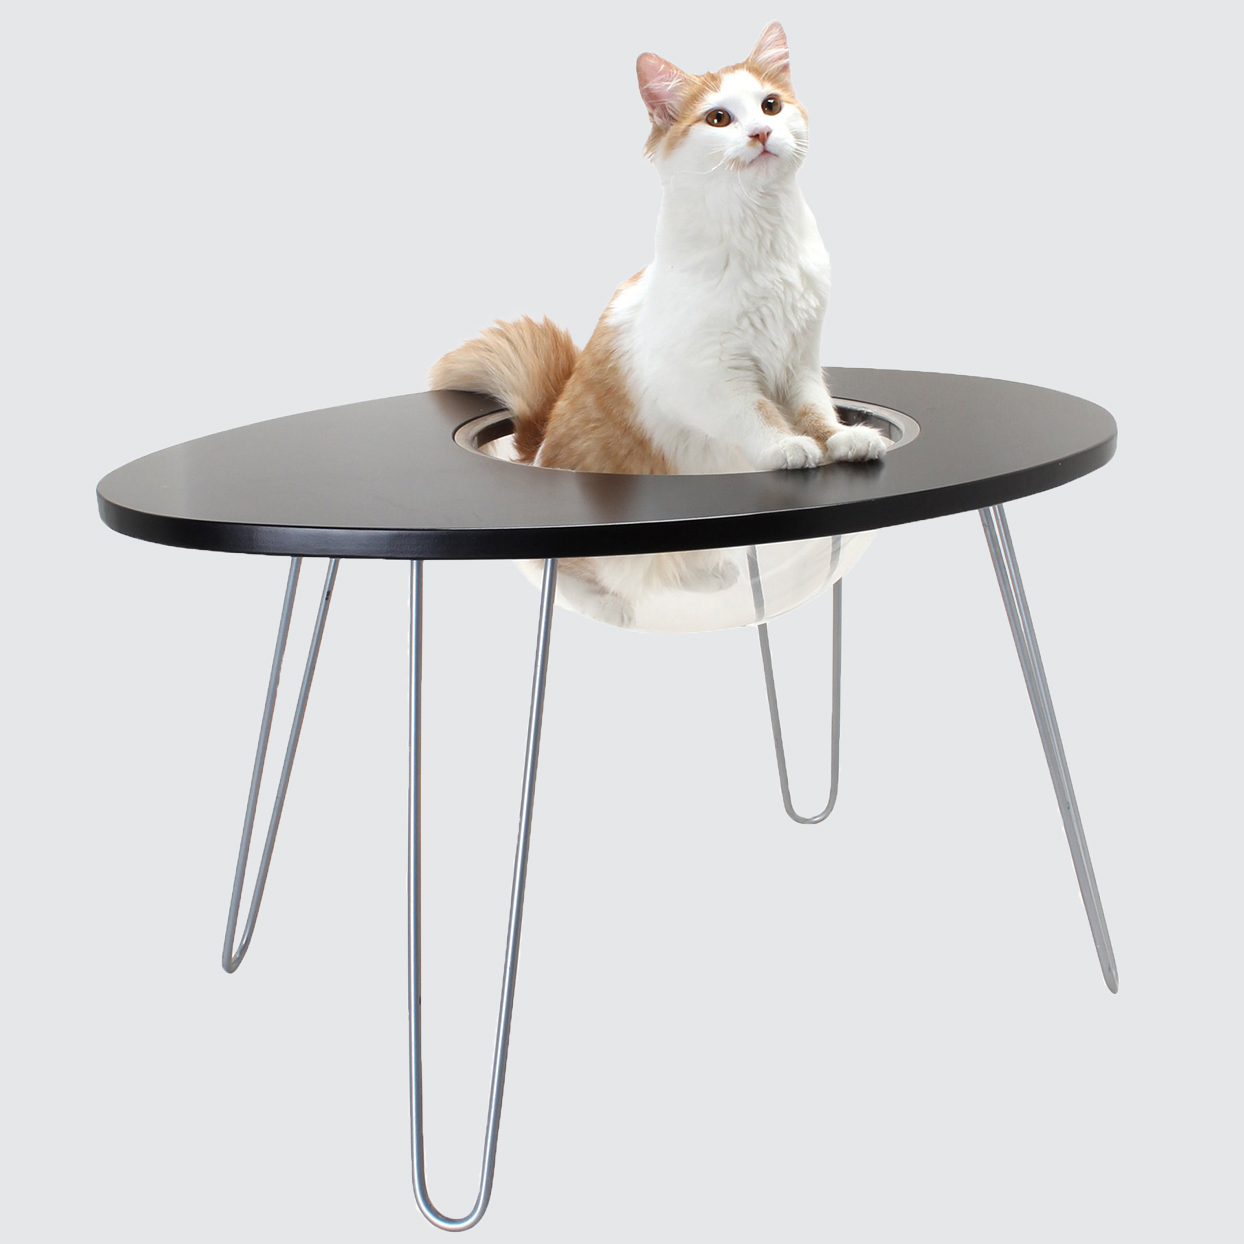 Hauspanther Nest Egg Raised Cat Bed and Side Table